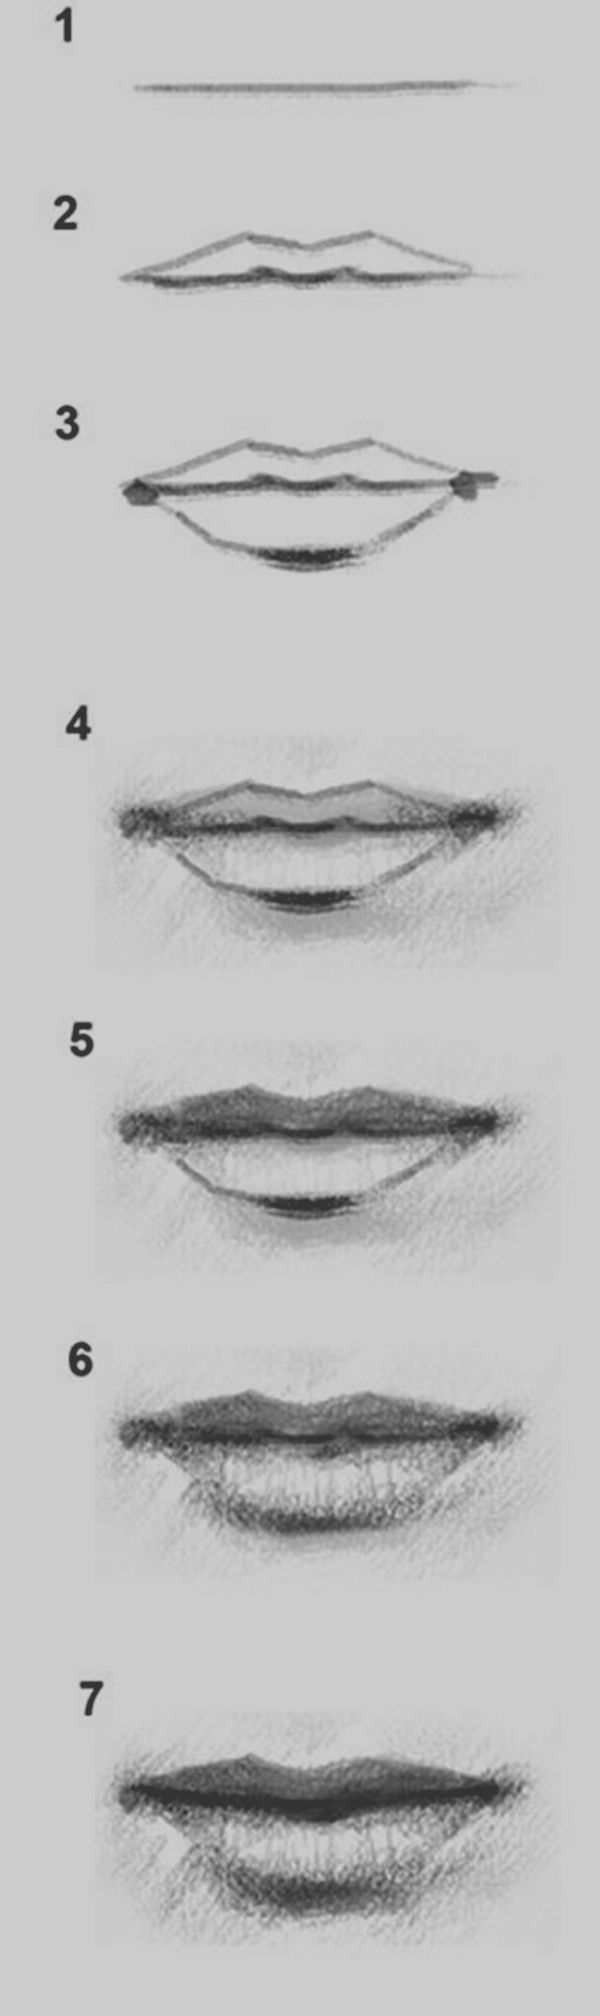 how to draw mouths step by step easy